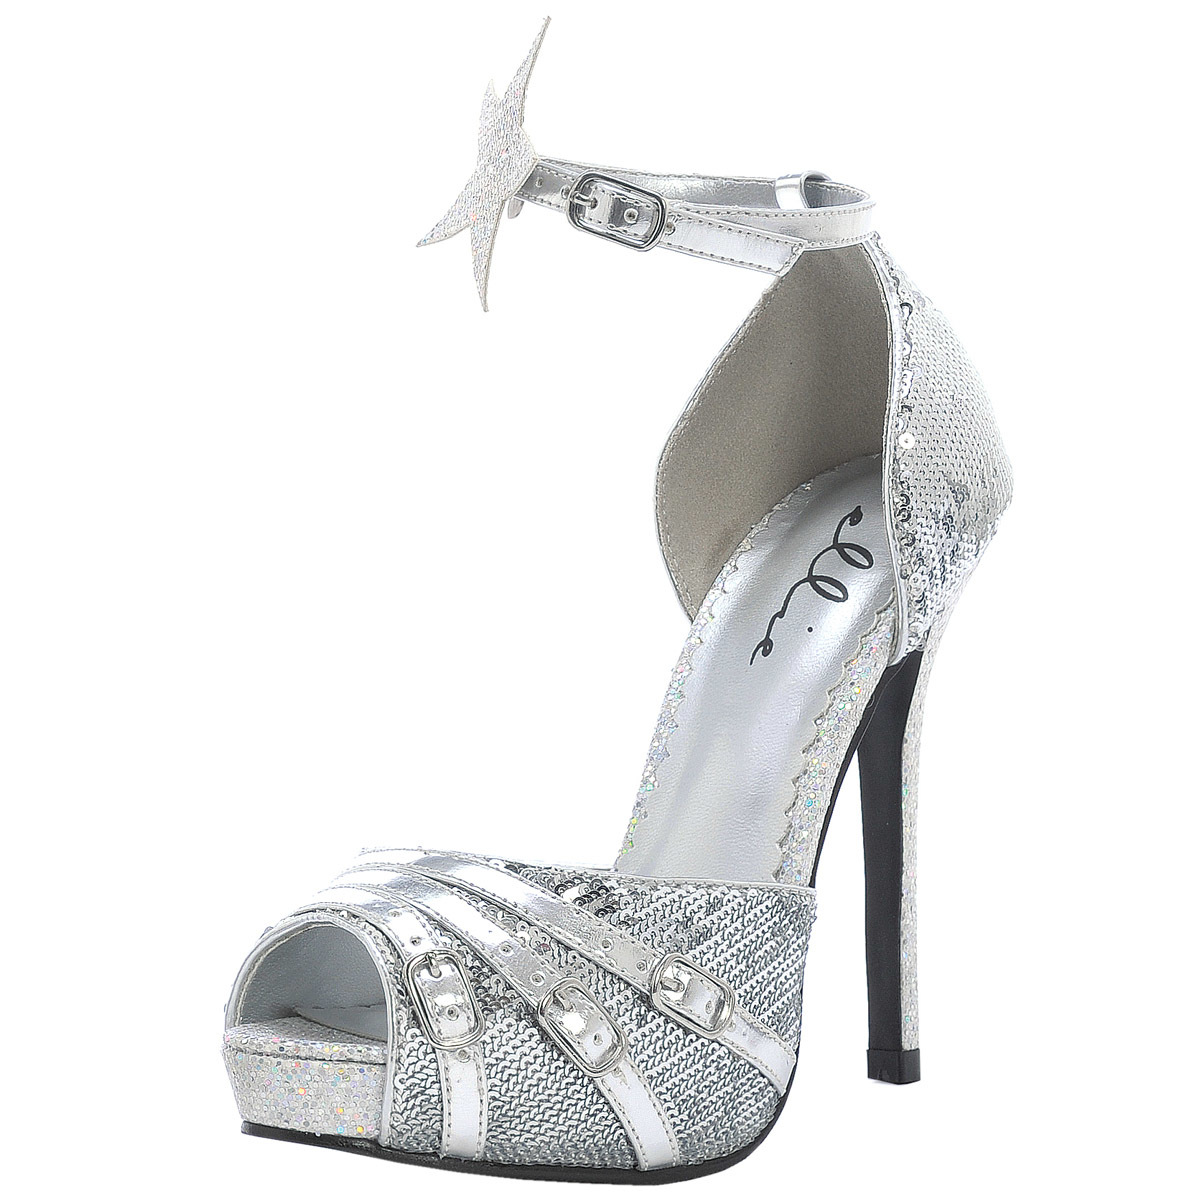 5 inch high heel shoes sandals peep toe silver